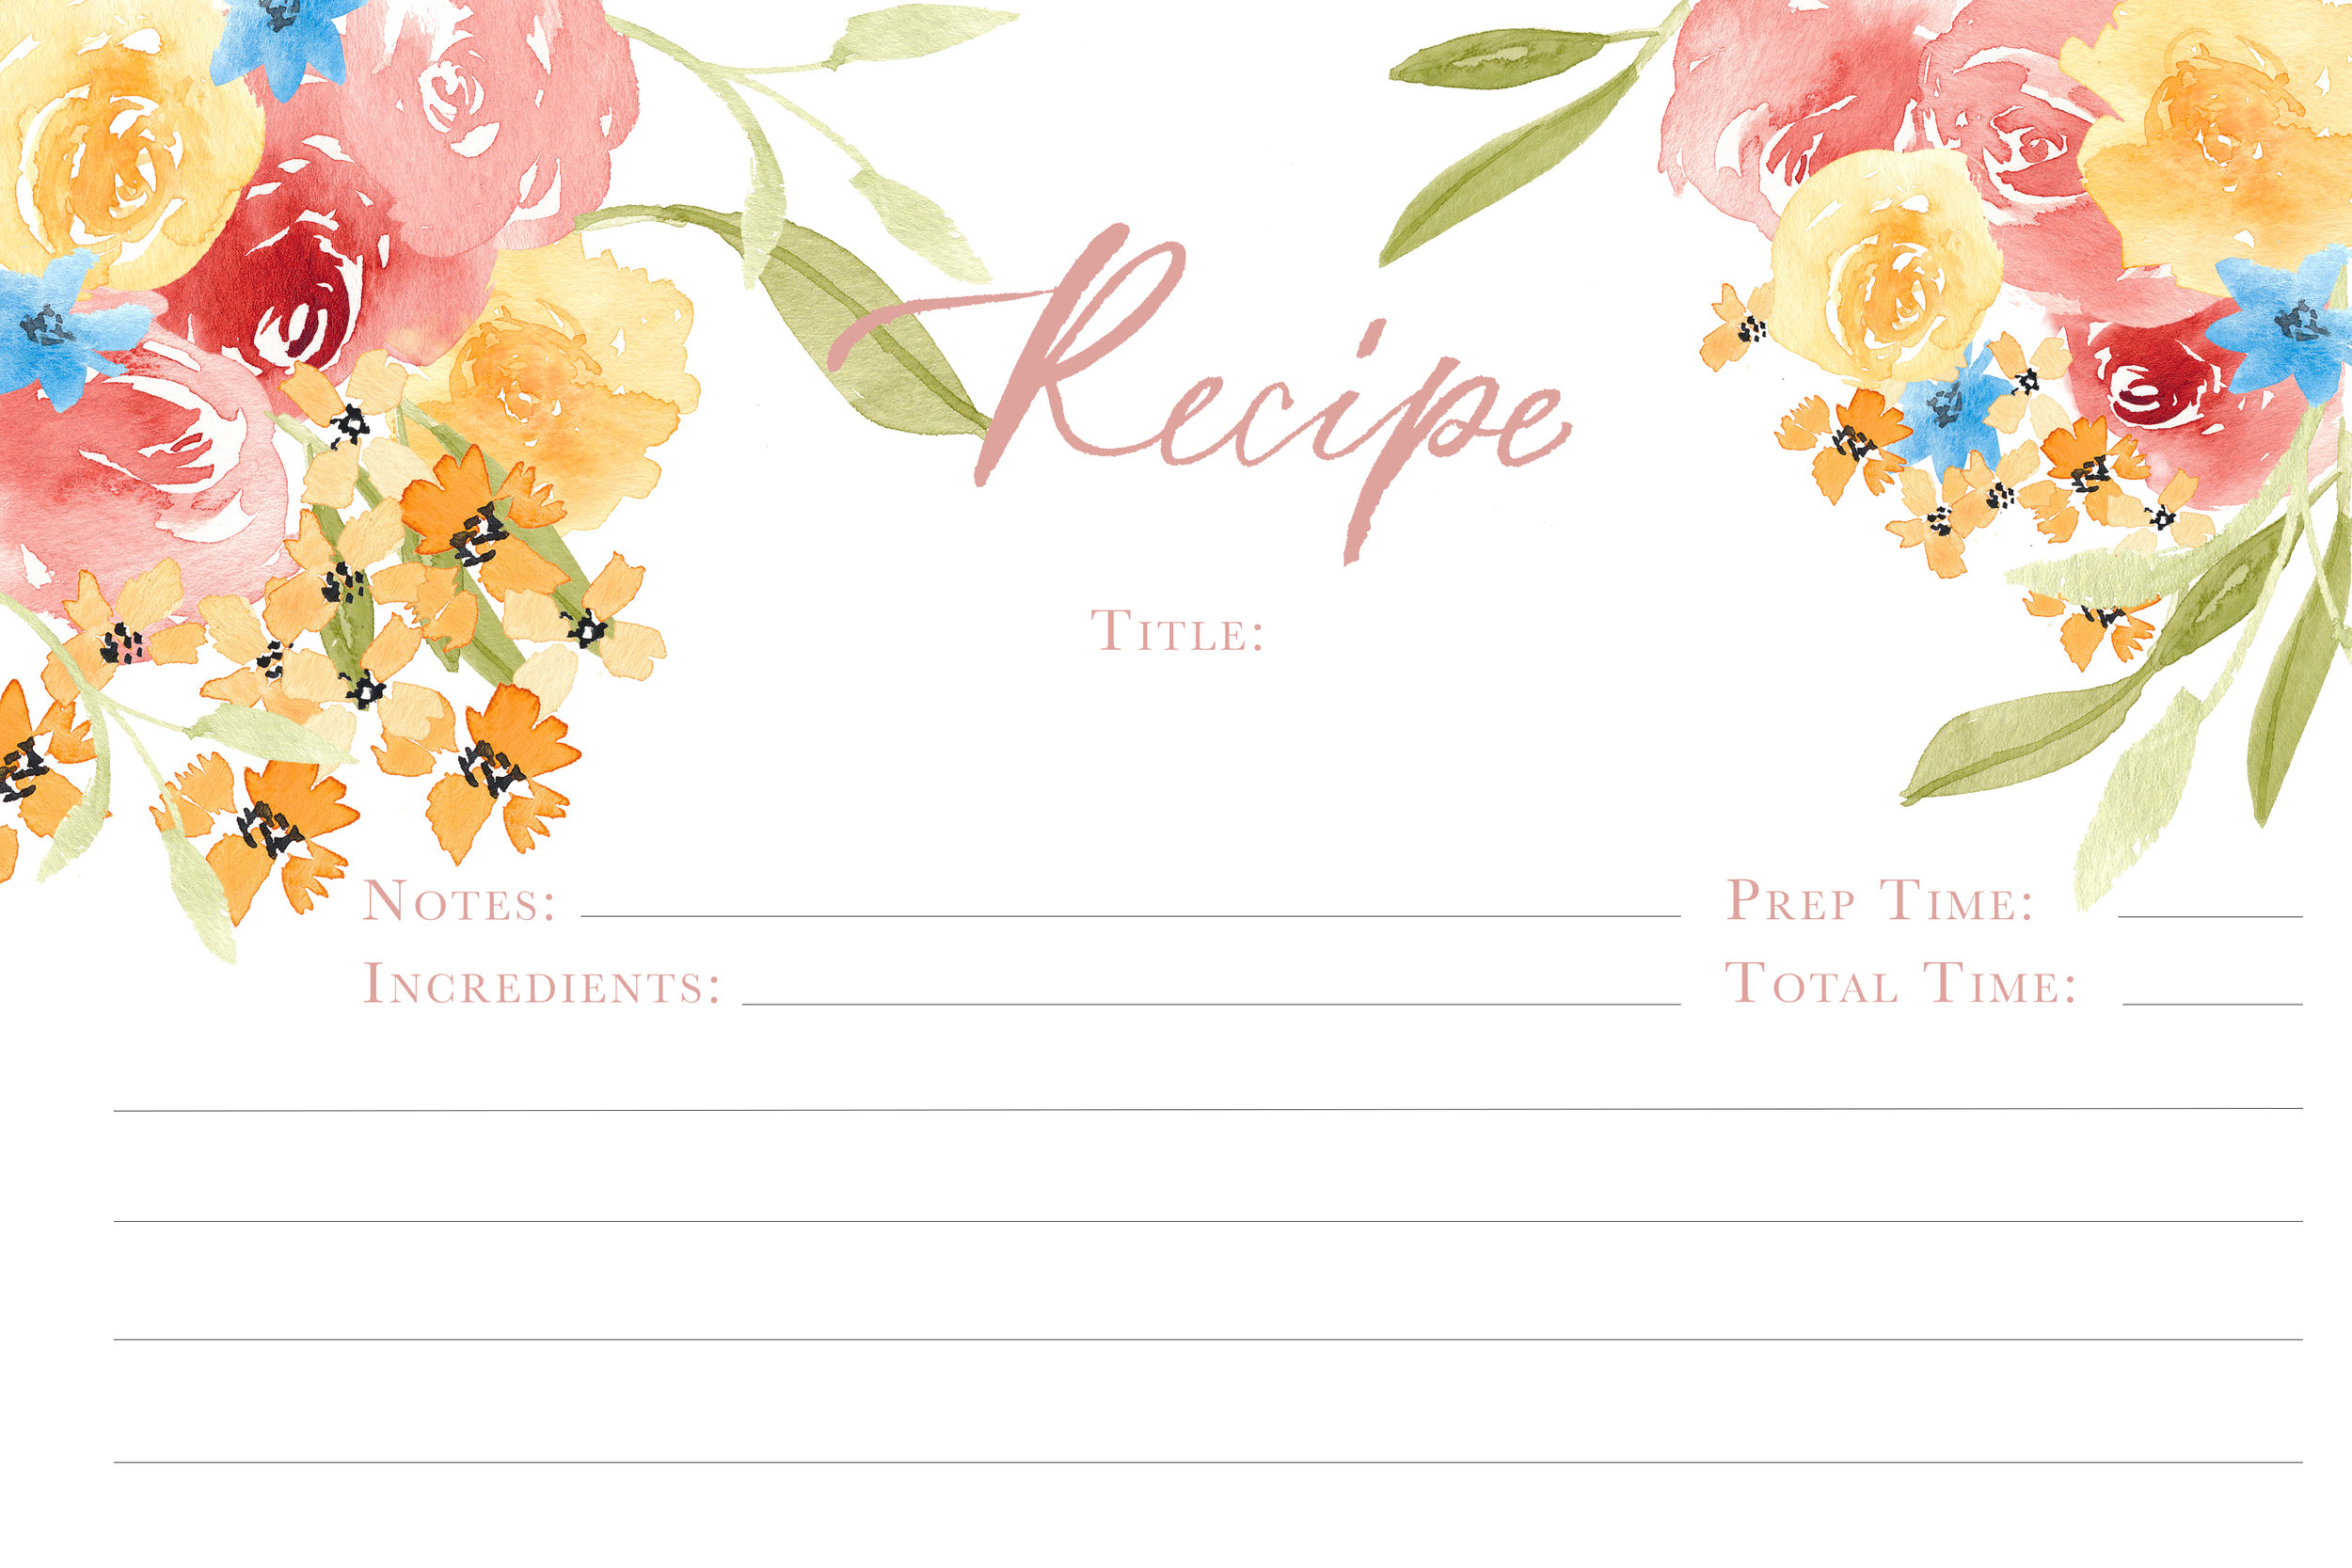 Free downloadable recipe card watercolor florals brush calligraphy